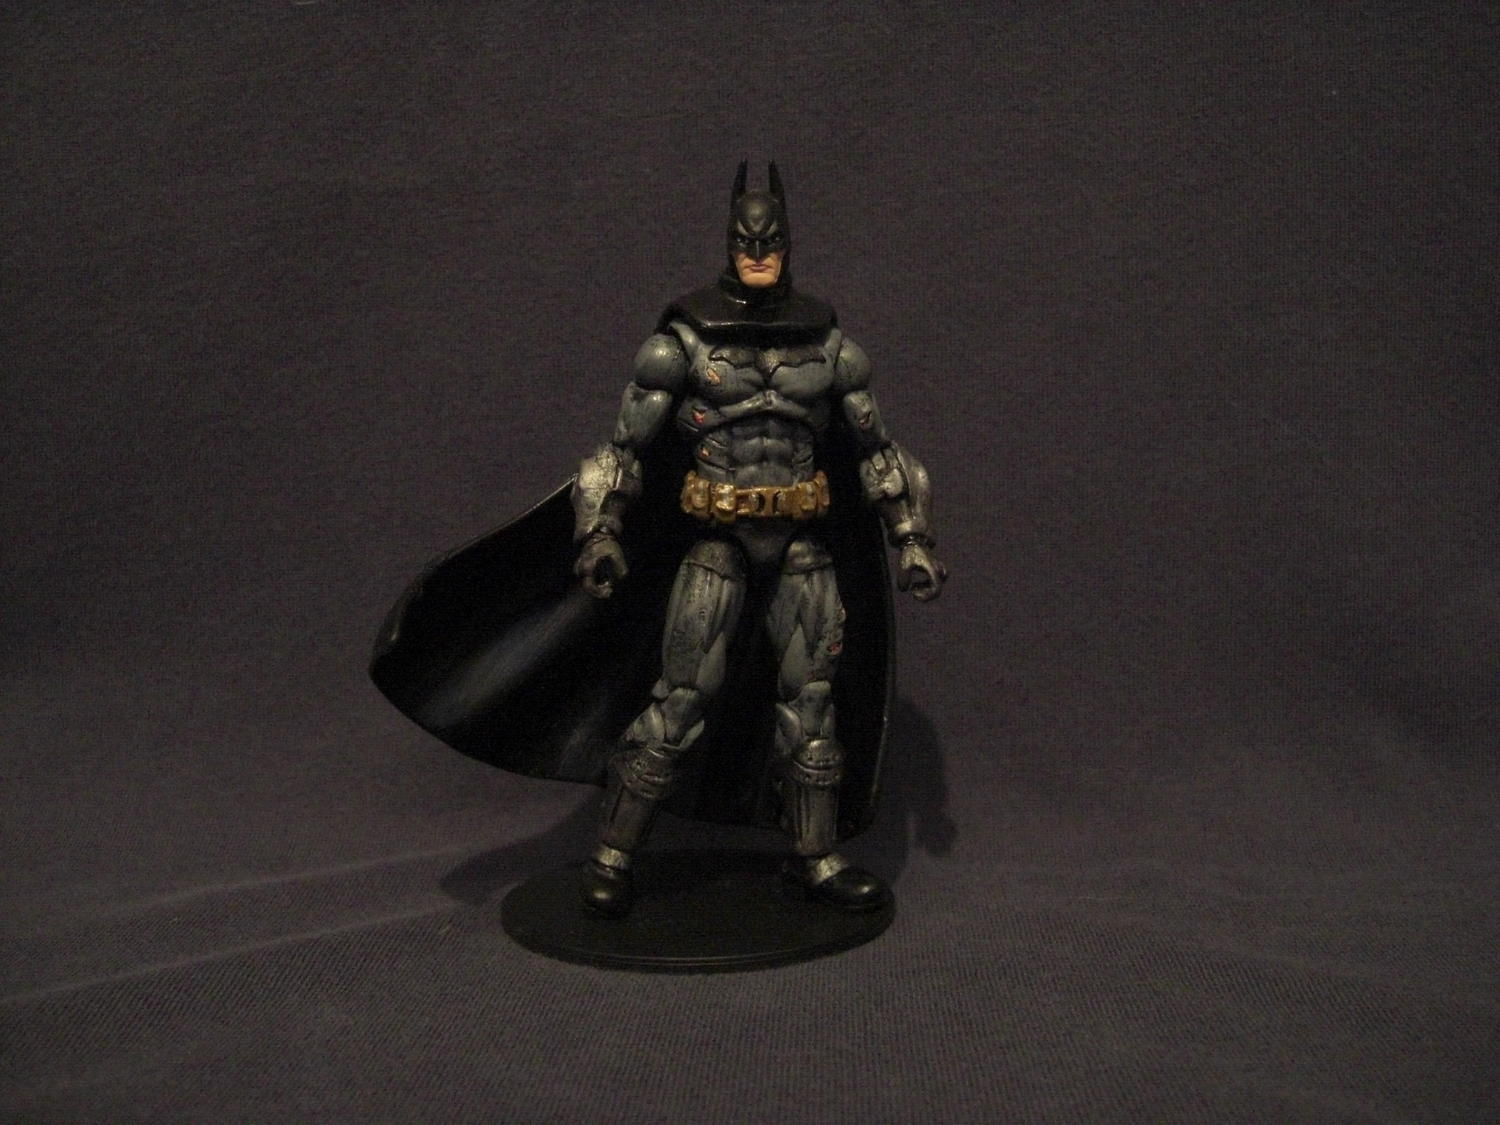 Batman Arkham City Armored Edition Toy